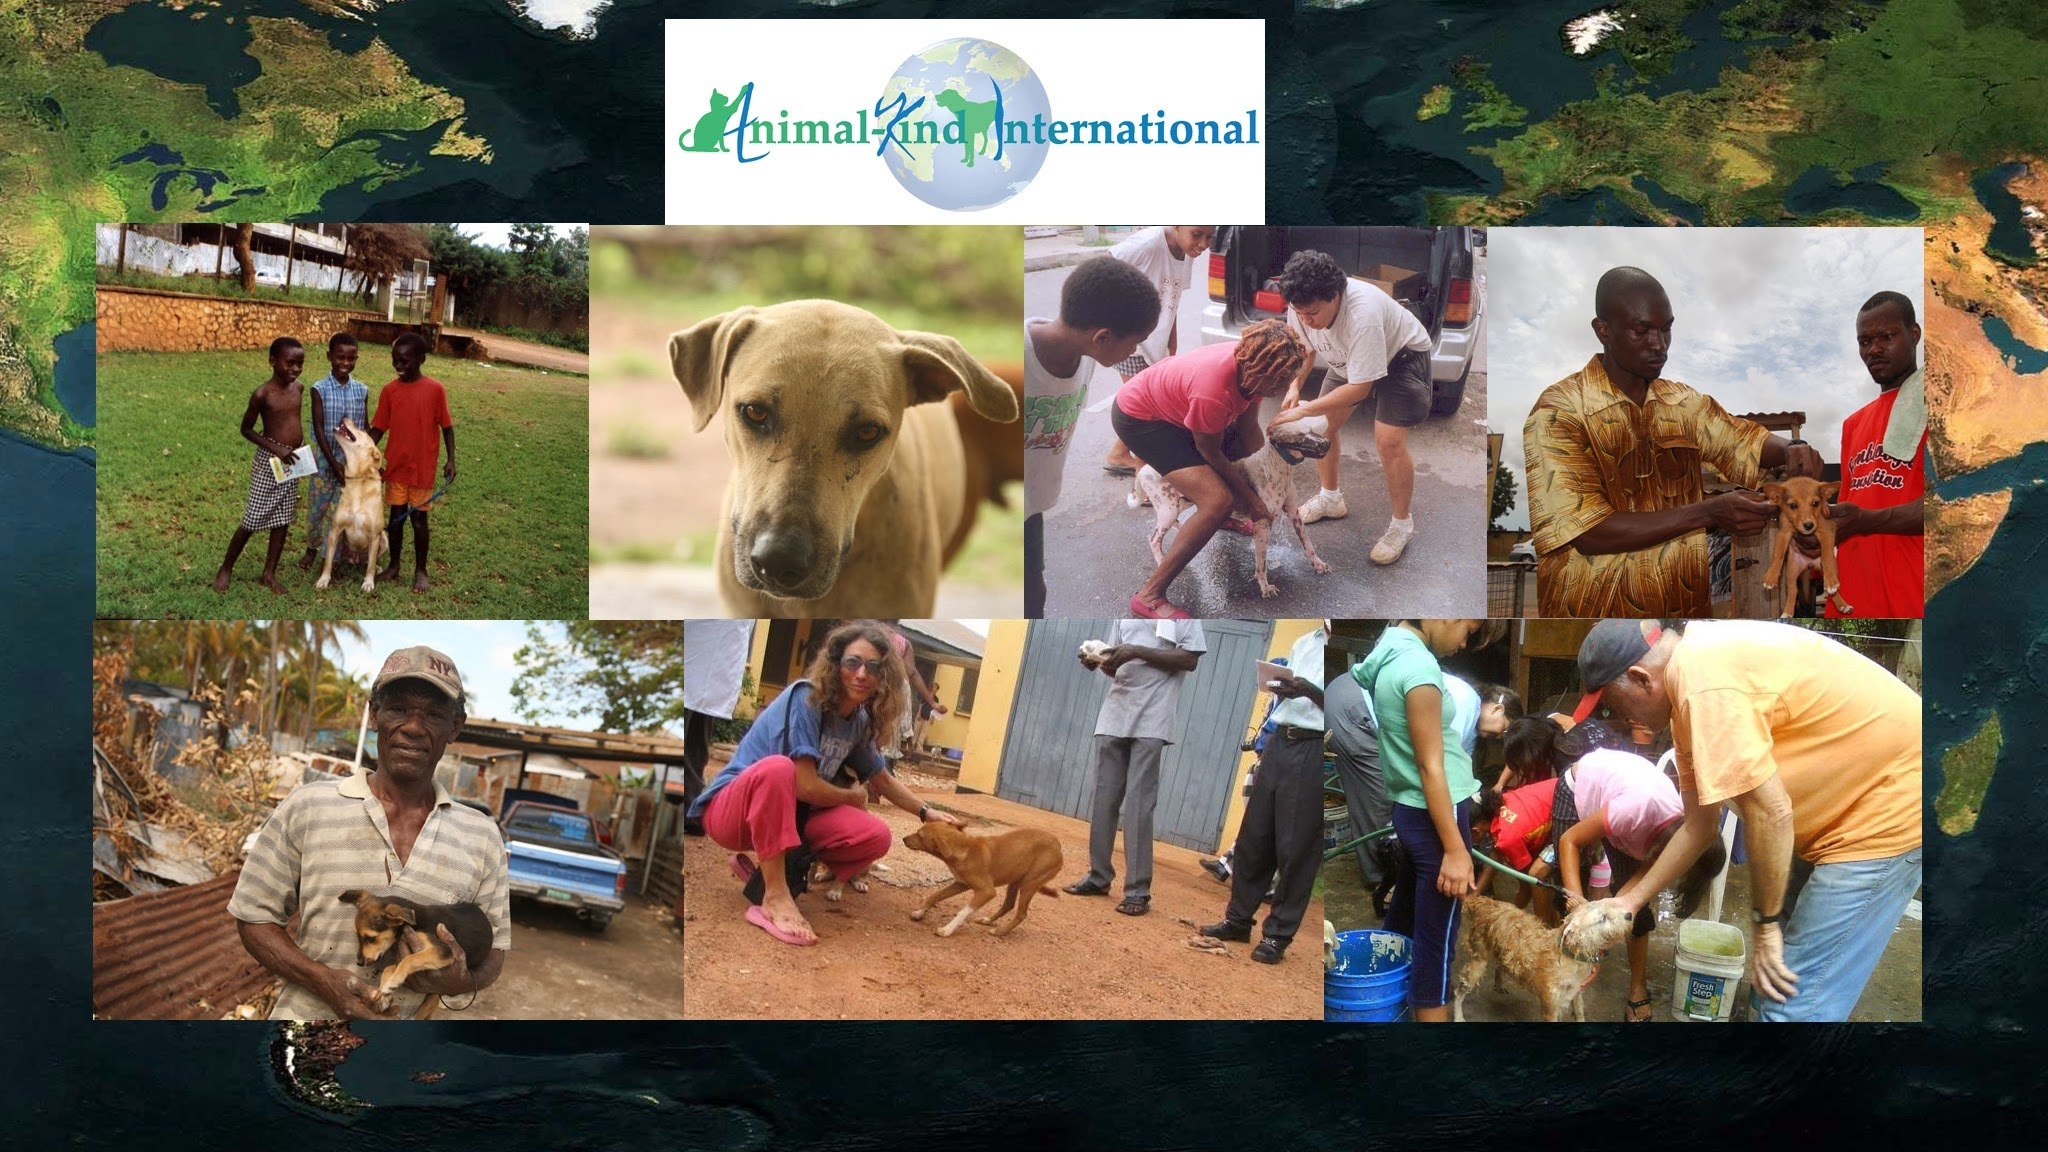 Animal Kind International